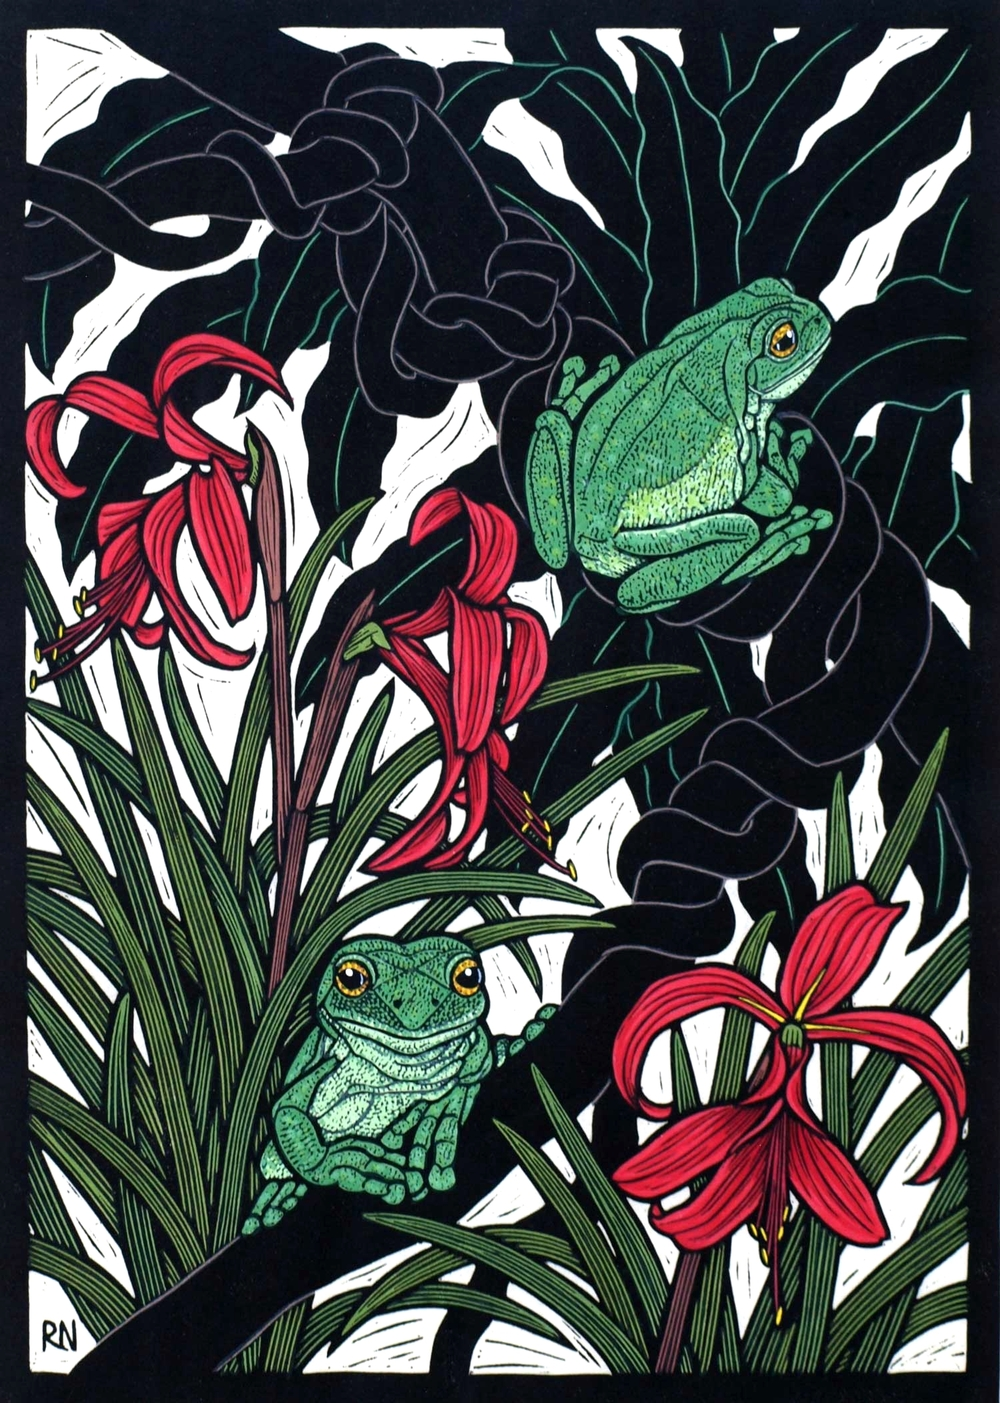 GREEN TREE FROG  49 X 35 CM    EDITION OF 50  HAND COLOURED LINOCUT ON HANDMADE JAPANESE PAPER  $1,050